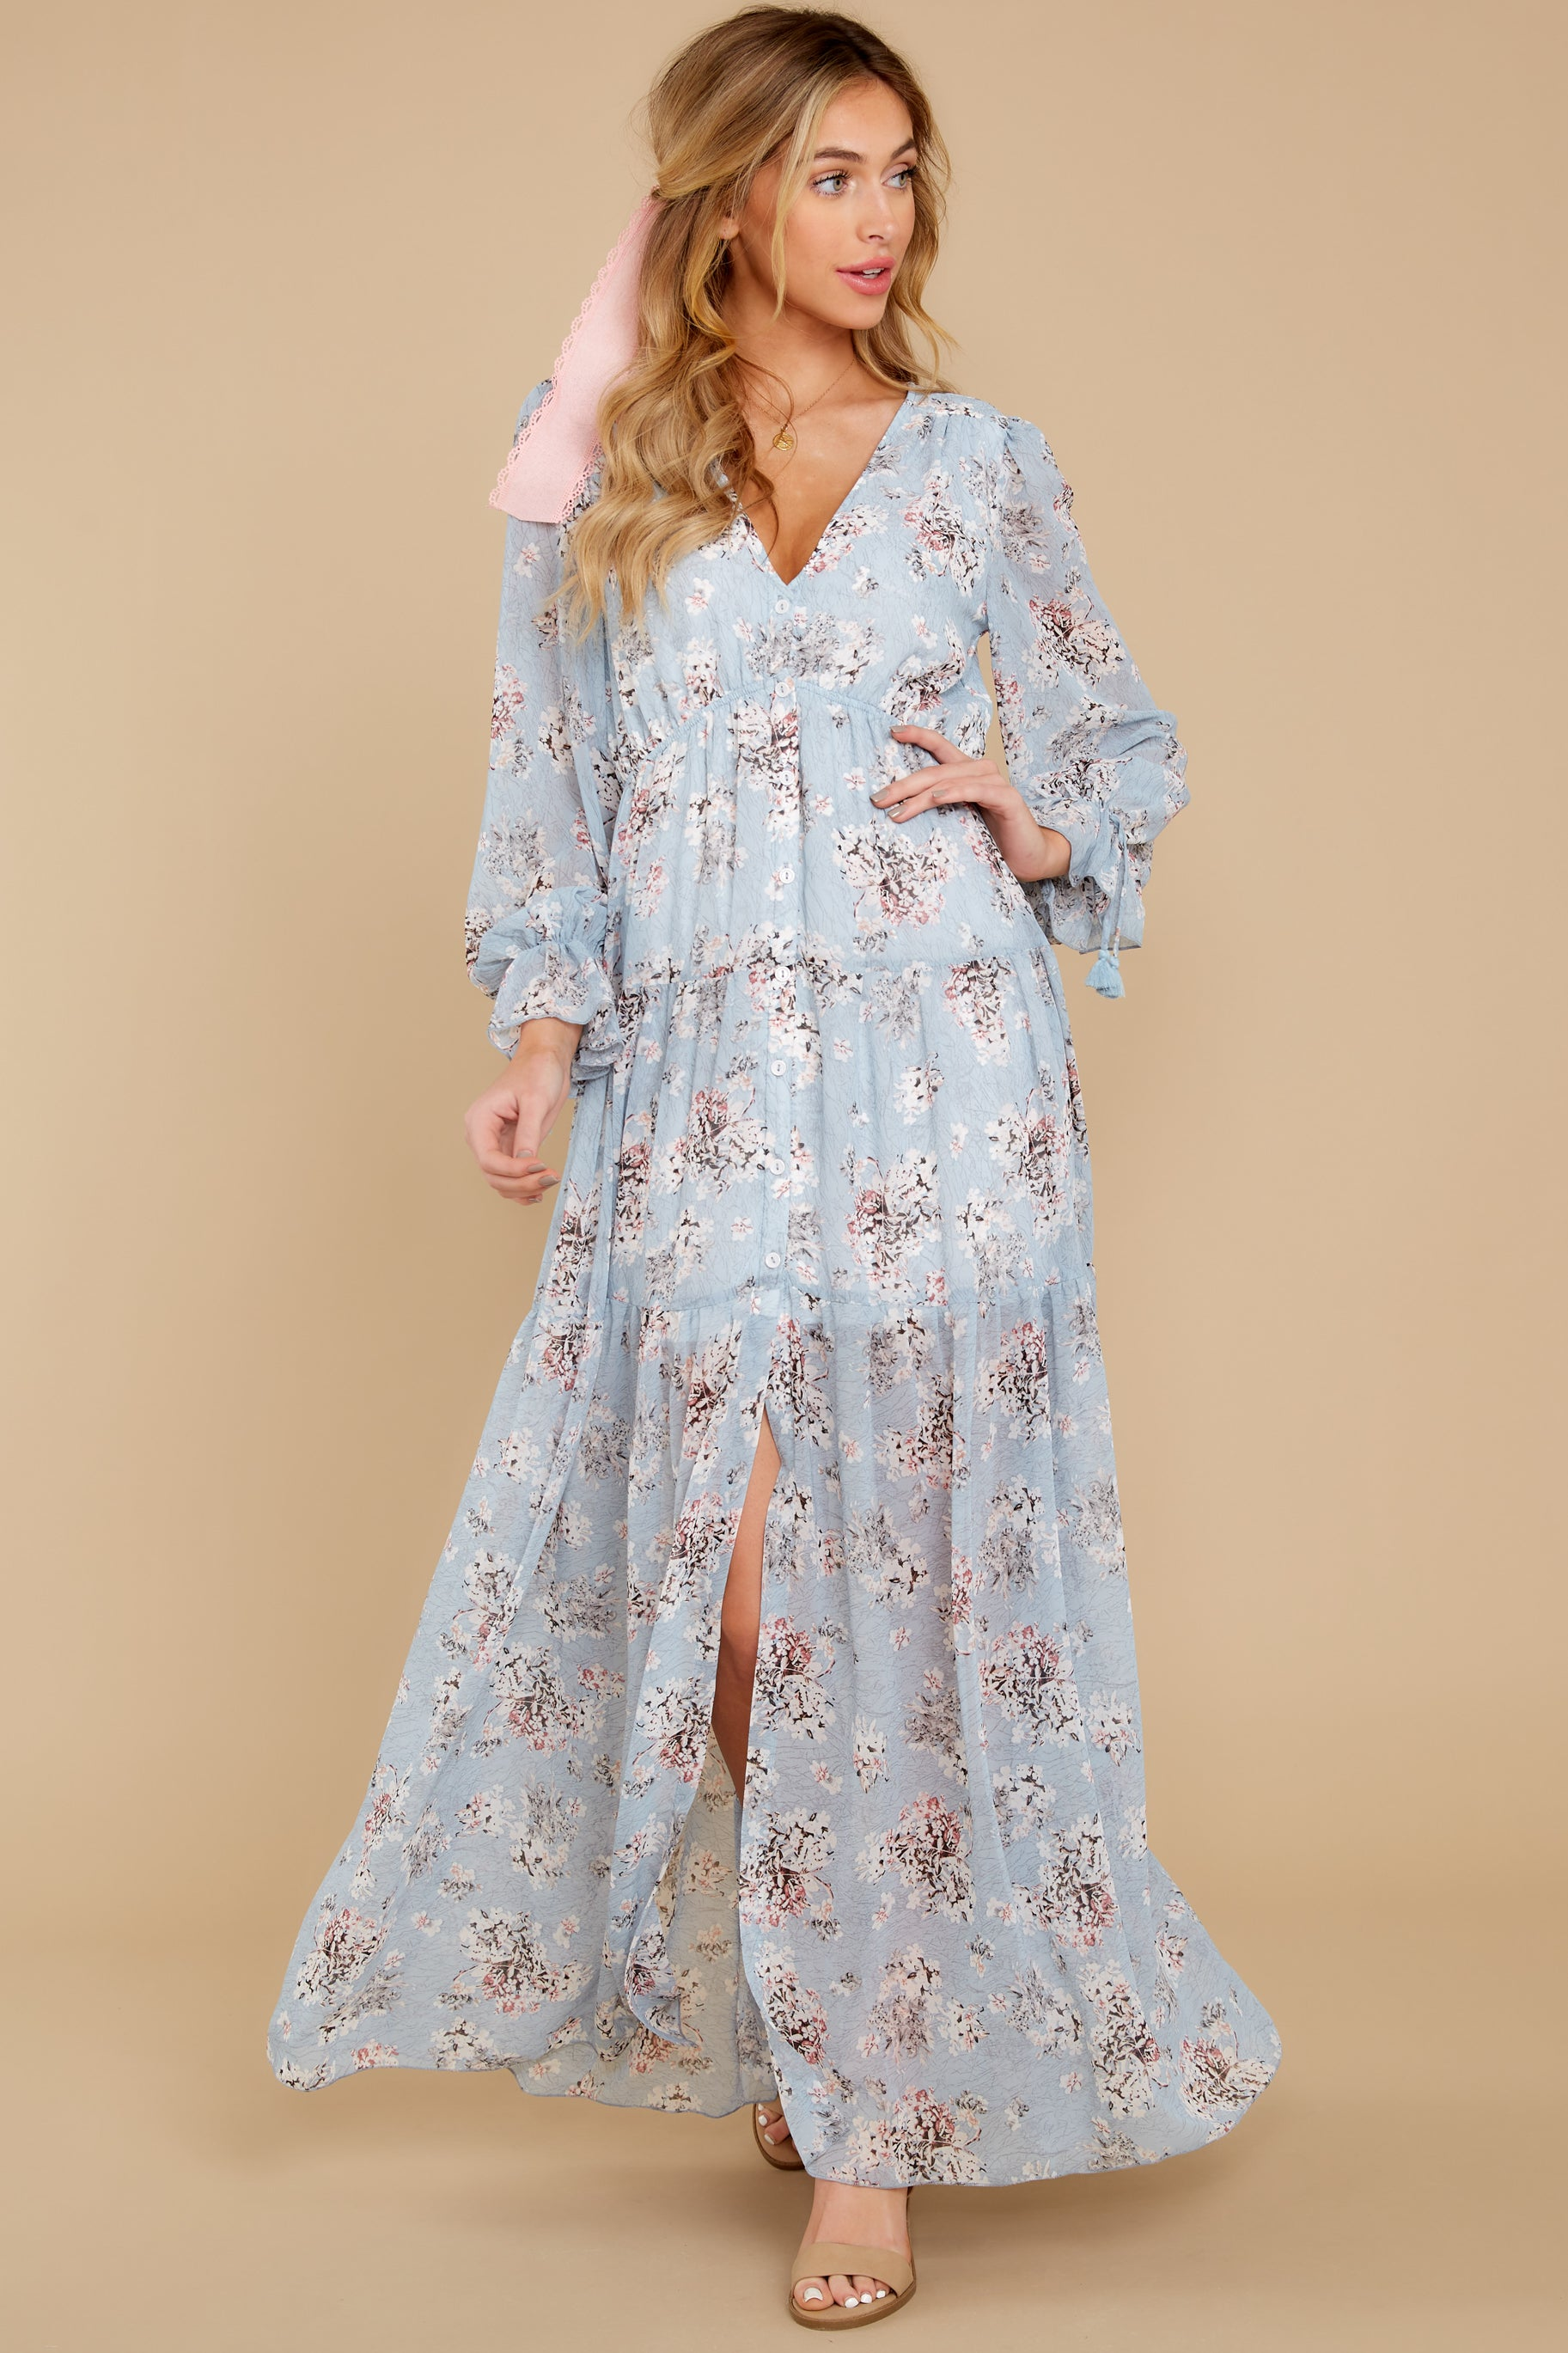 3 Love In Bloom Light Blue Floral Print Maxi Dress at reddress.com